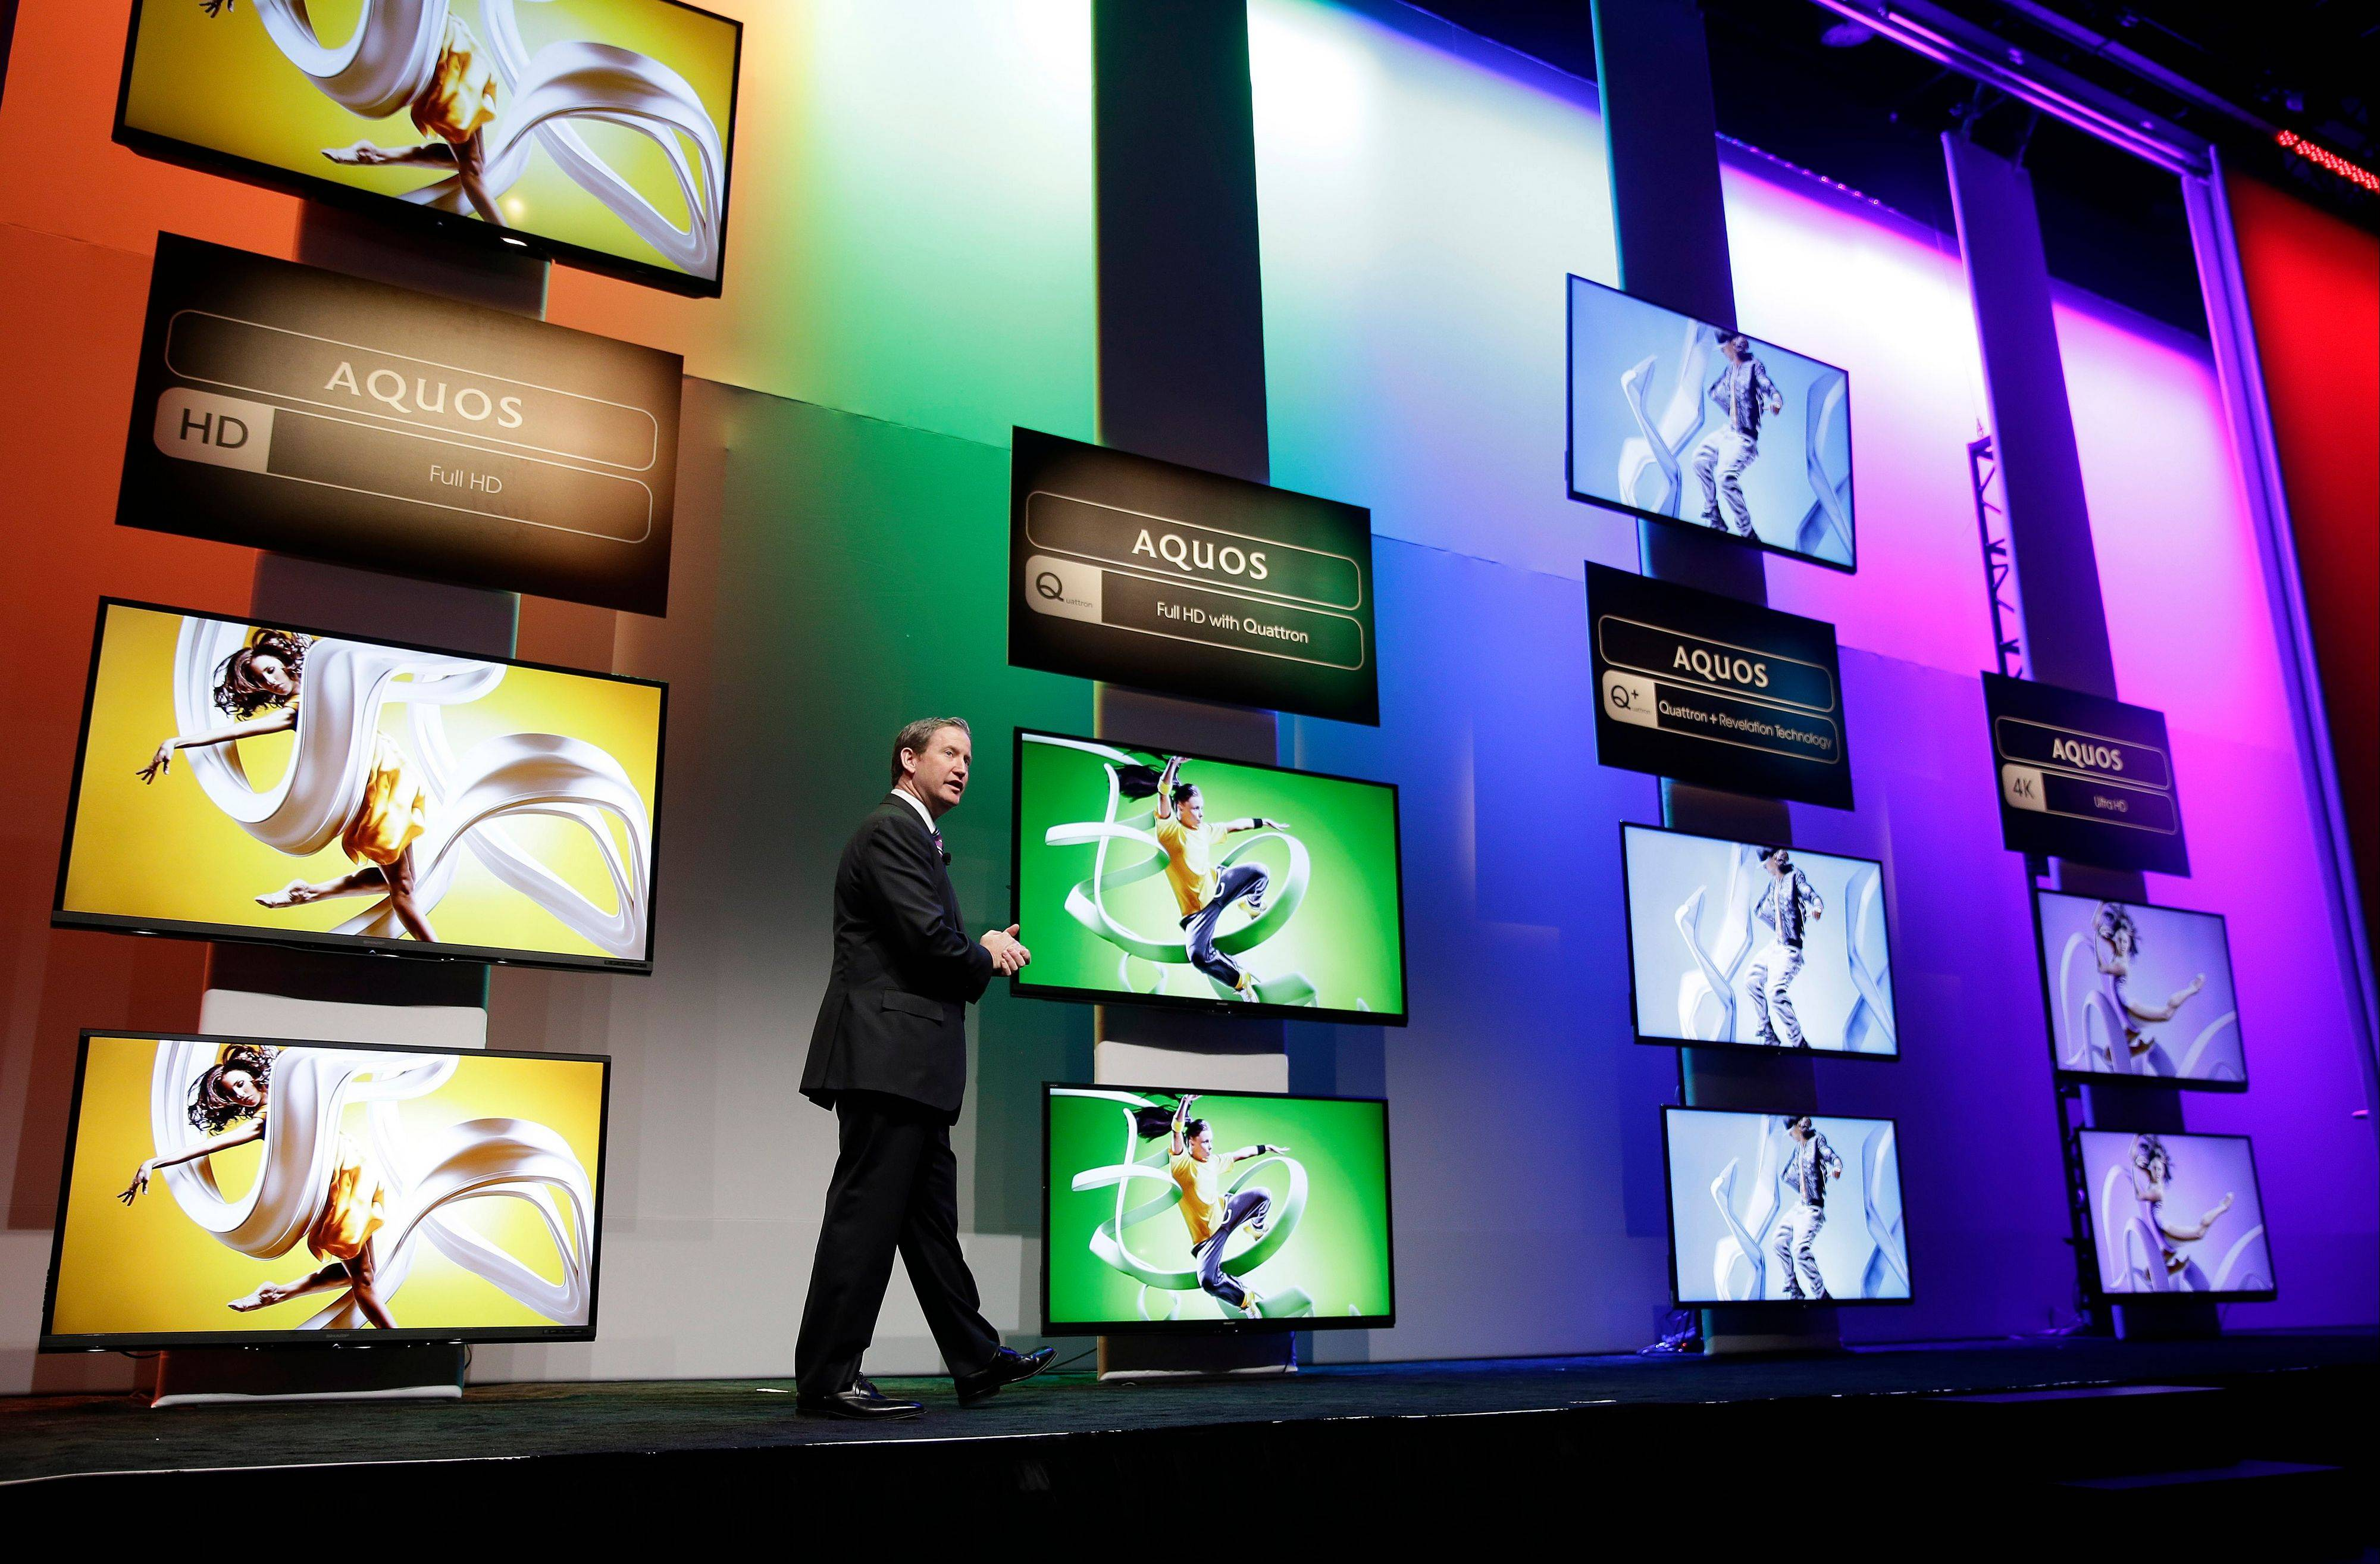 President of Sharp Electronics Marketing Corporation of America John Herrington speaks during a news conference announcing the new lineup of Sharp televisions at the Consumer Electronics Show in Las Vegas.